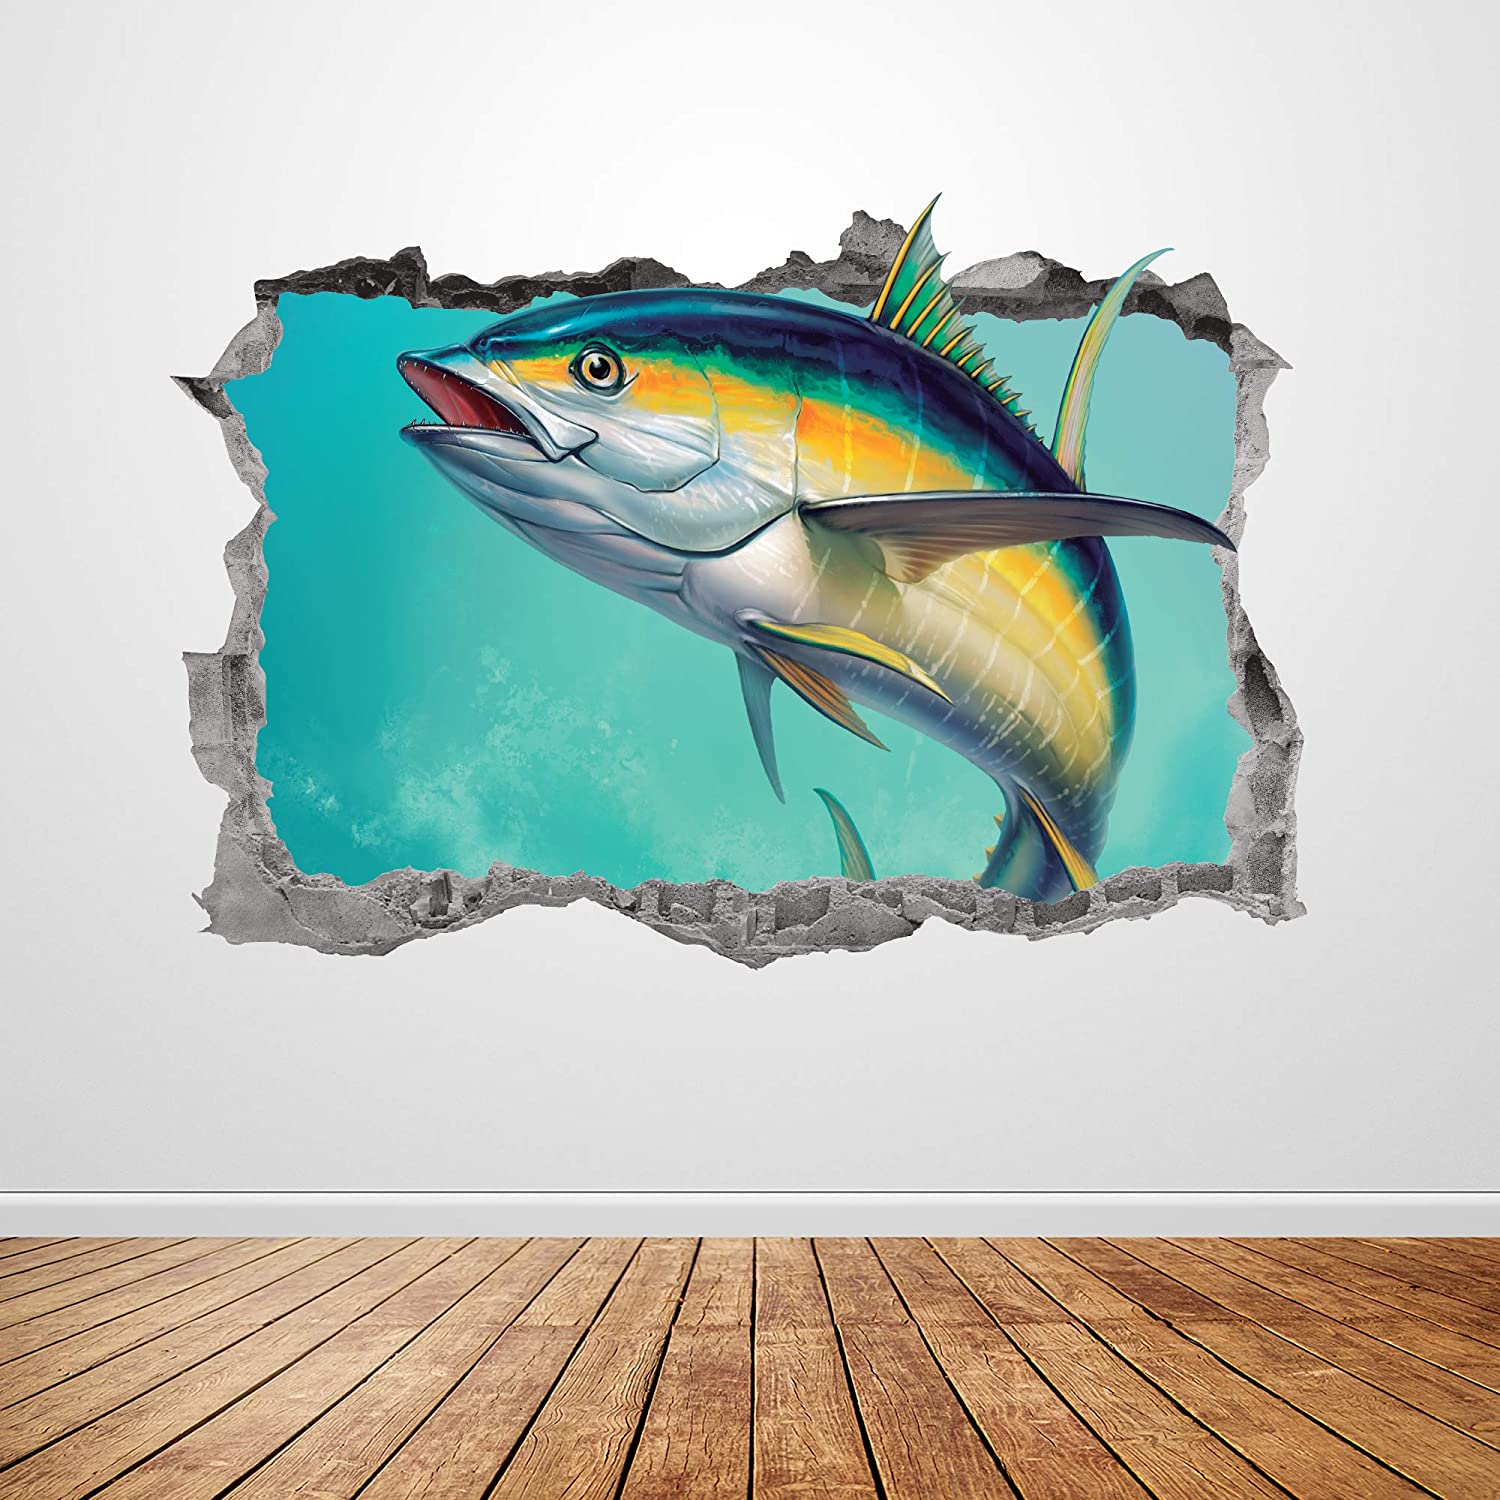 """Fish Wall Decal Art Smashed 3D Graphic Sports Tuna Fishing Wall Sticker Mural Poster Room Home Garage Decor Gift UP392 (50""""W x 34""""H inches)"""